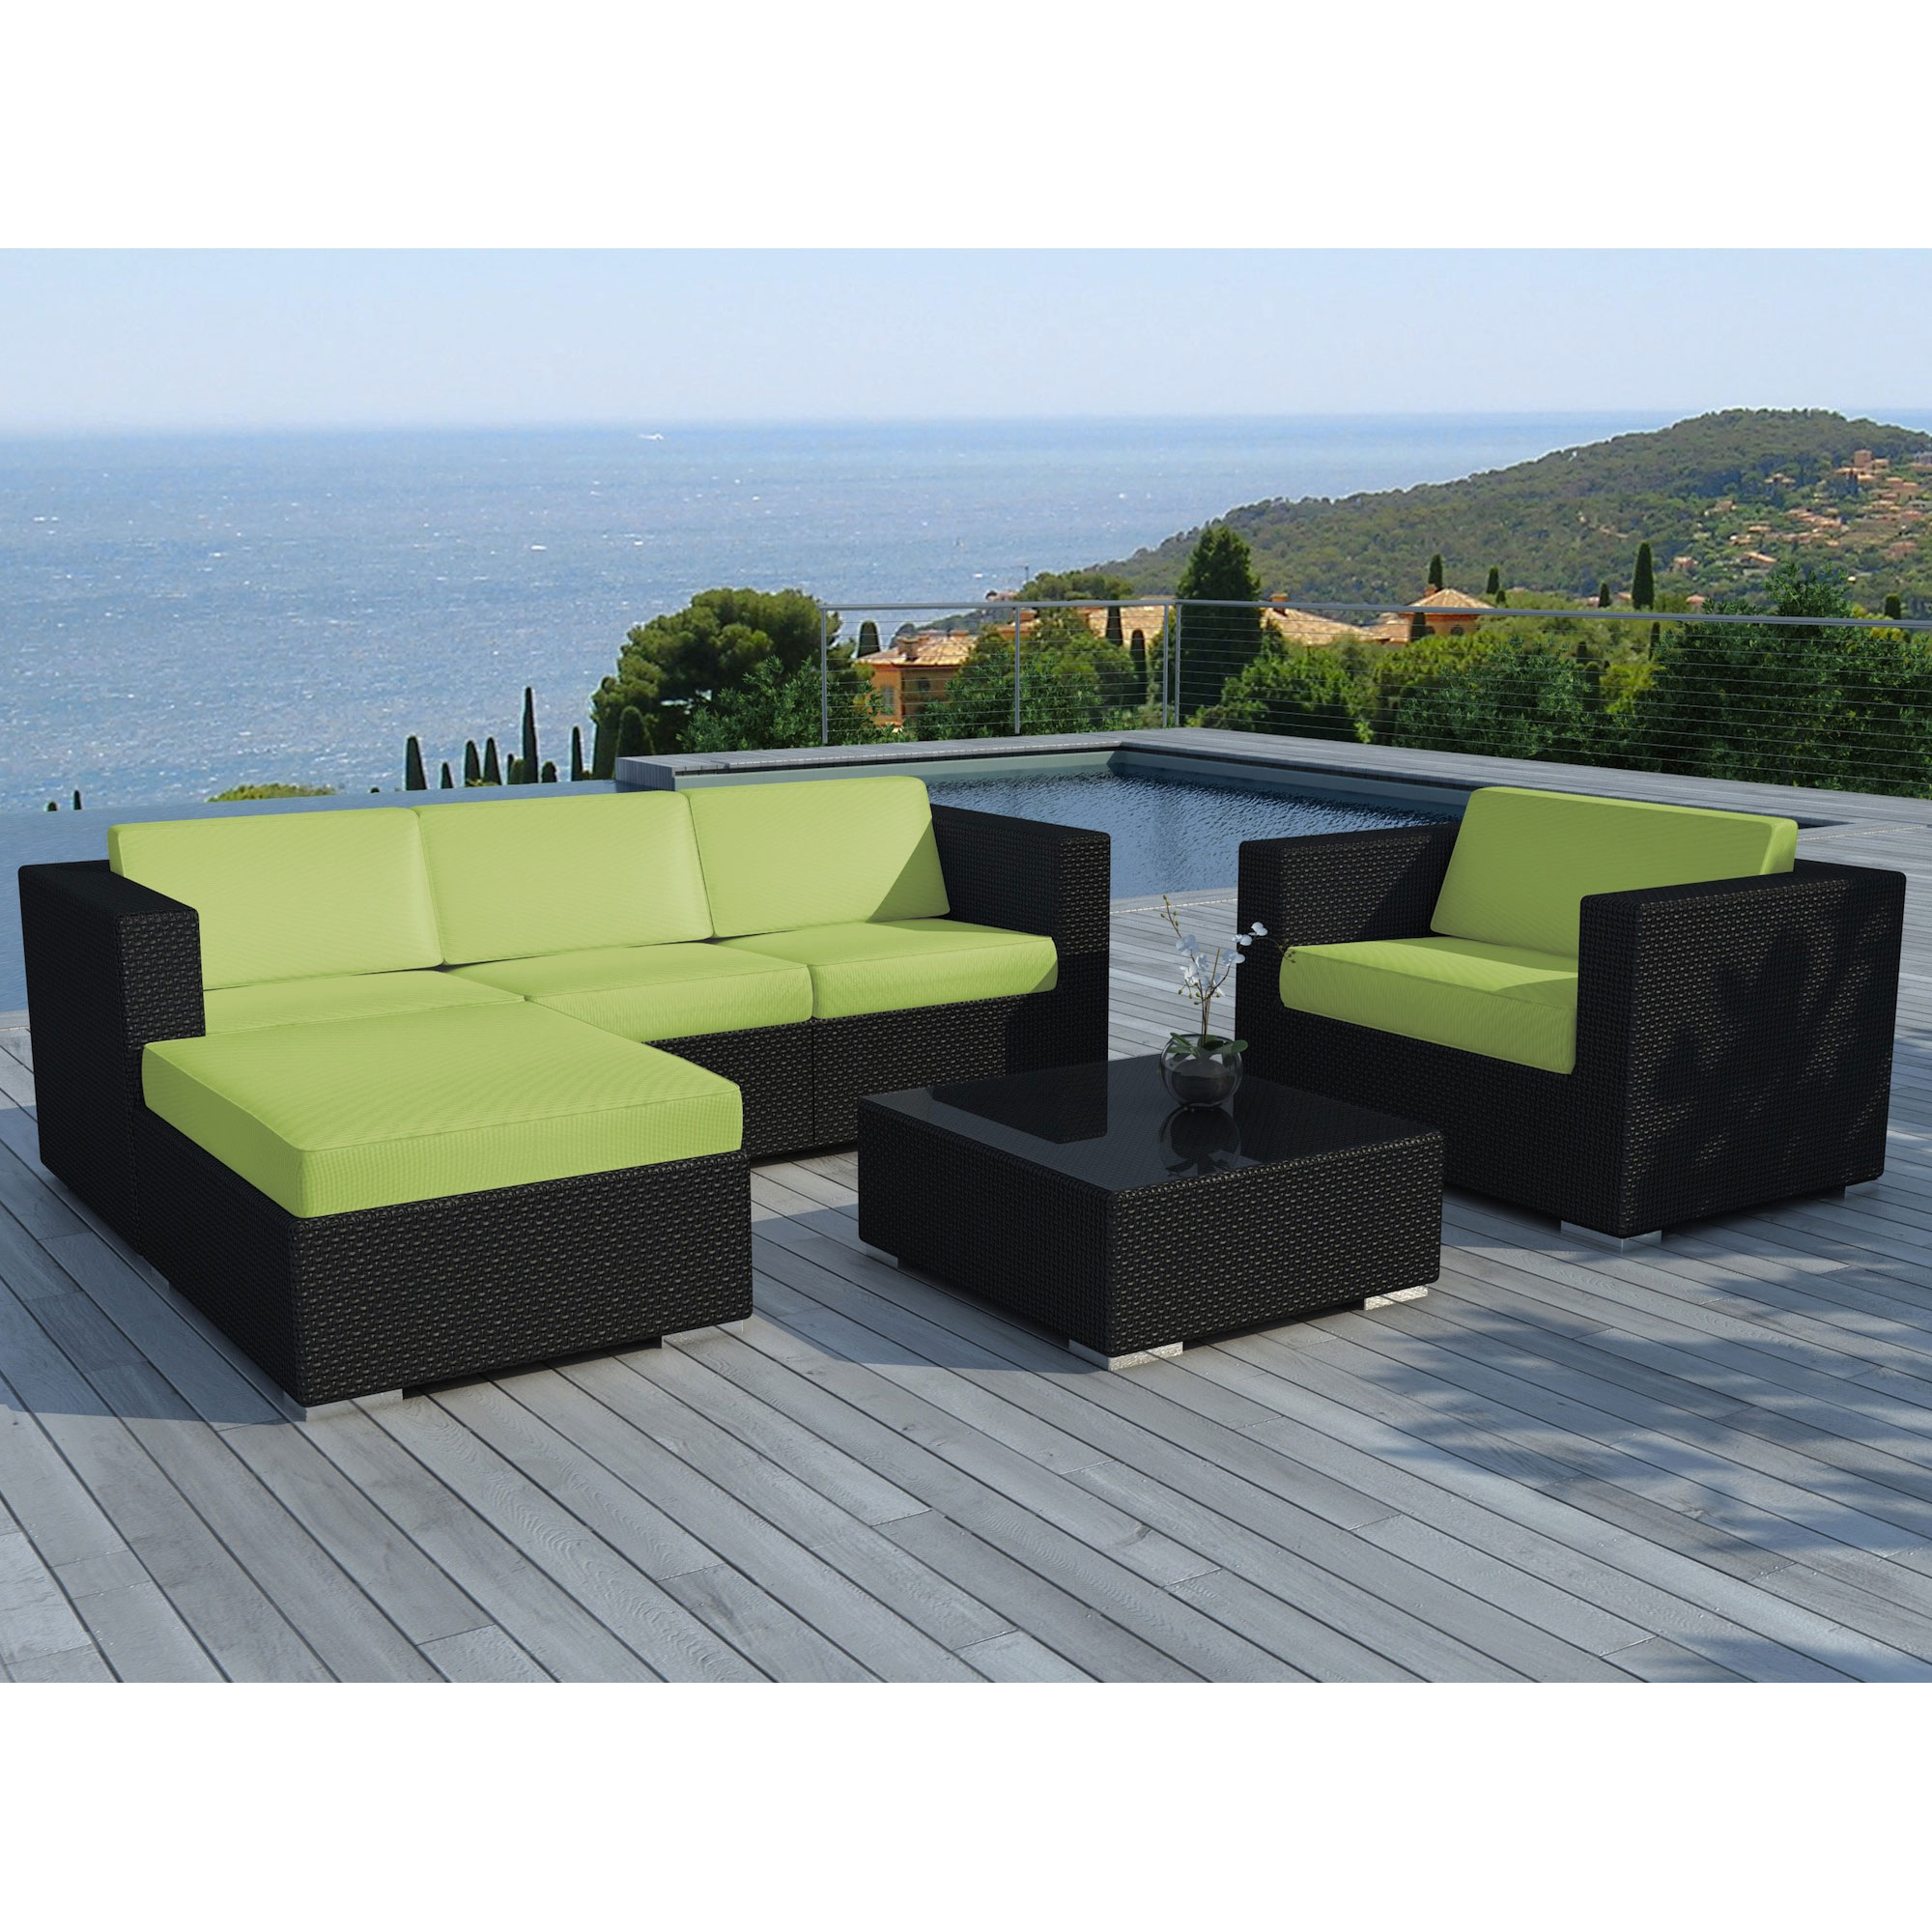 delorm design sd8201 salon de jardin amalys en r sine tress e comparer avec. Black Bedroom Furniture Sets. Home Design Ideas